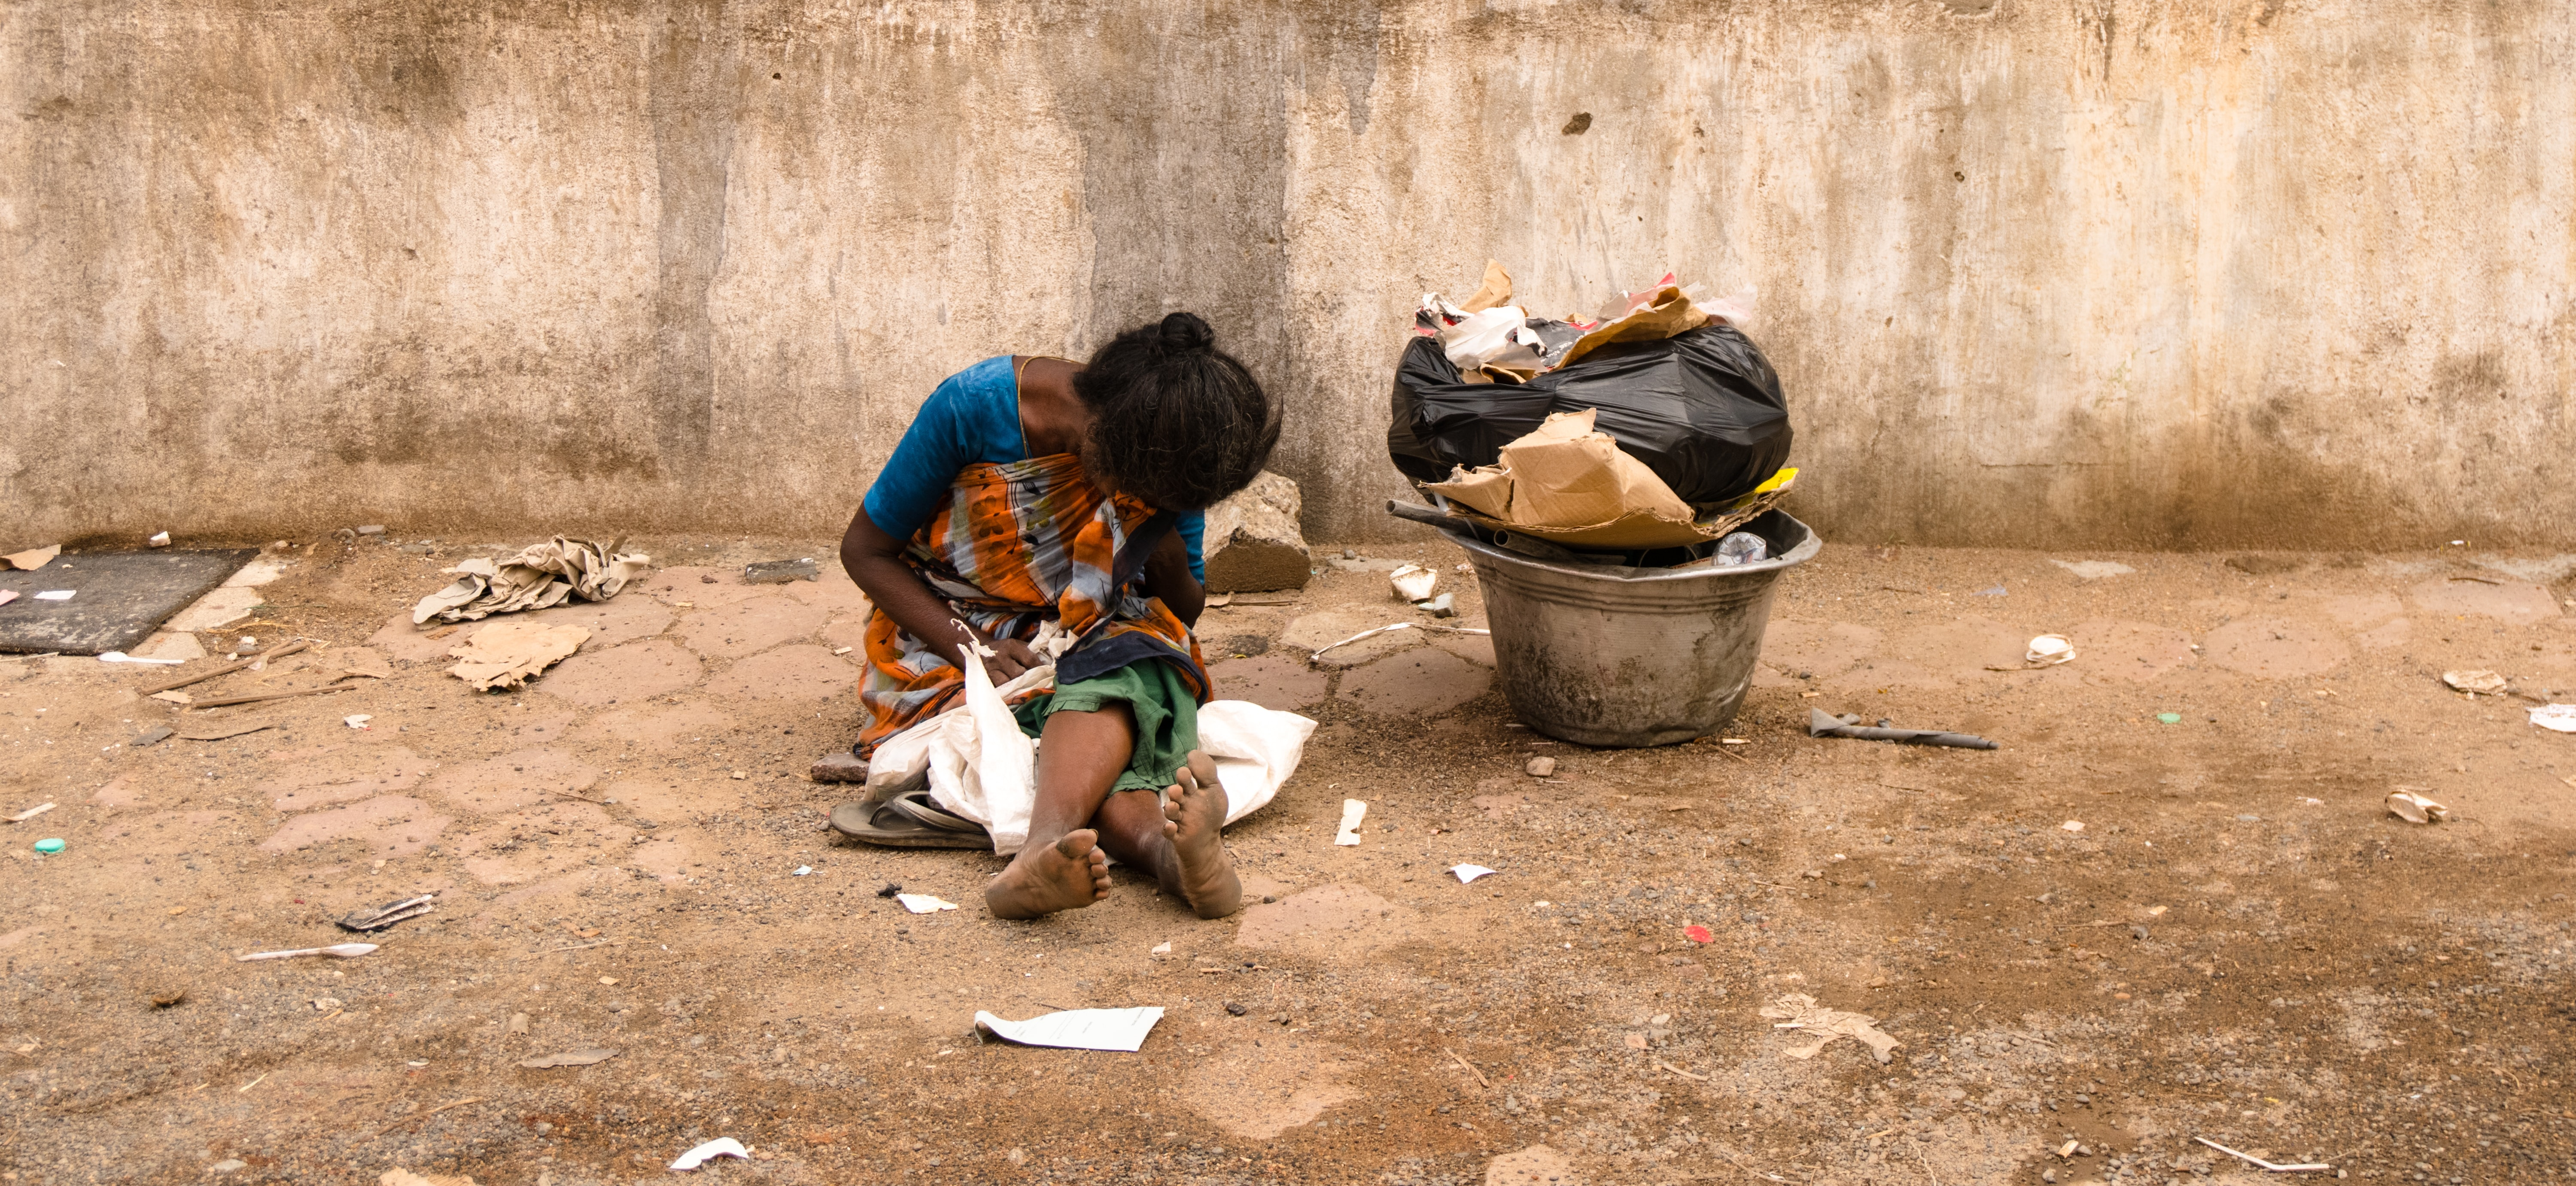 A woman sits against a wall on a dirty street aside a bucket